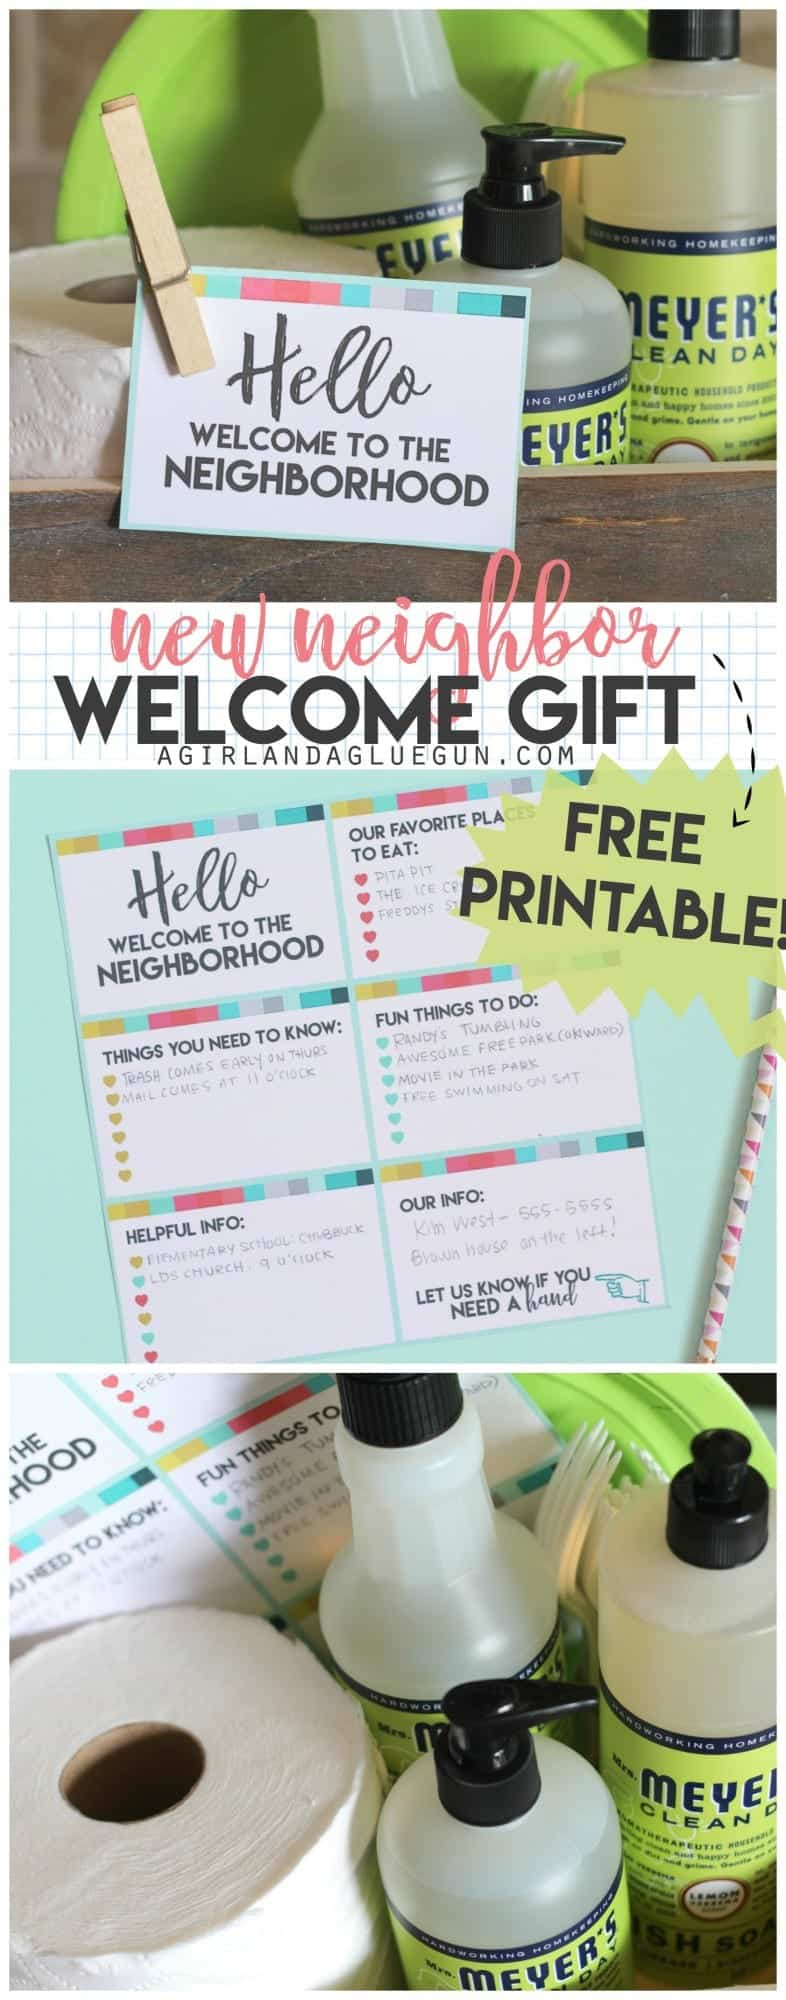 New neighbor welcome gift with printable - A girl and a glue gun